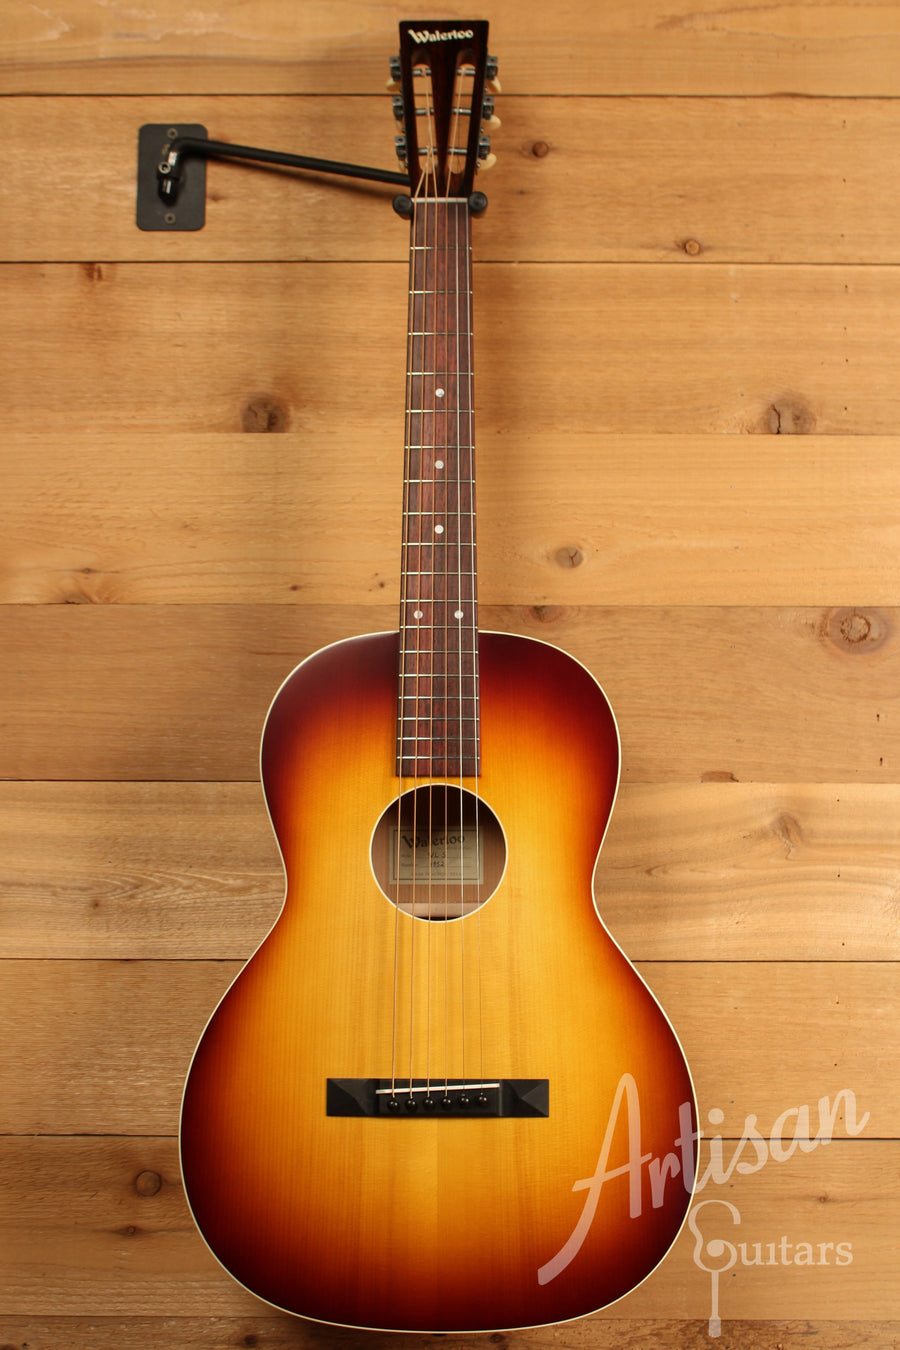 Waterloo WL-S Ladder Braced Guitar Solid Spruce and Cherry with Vintage Iced Tea Finish ID-11388 - Artisan Guitars